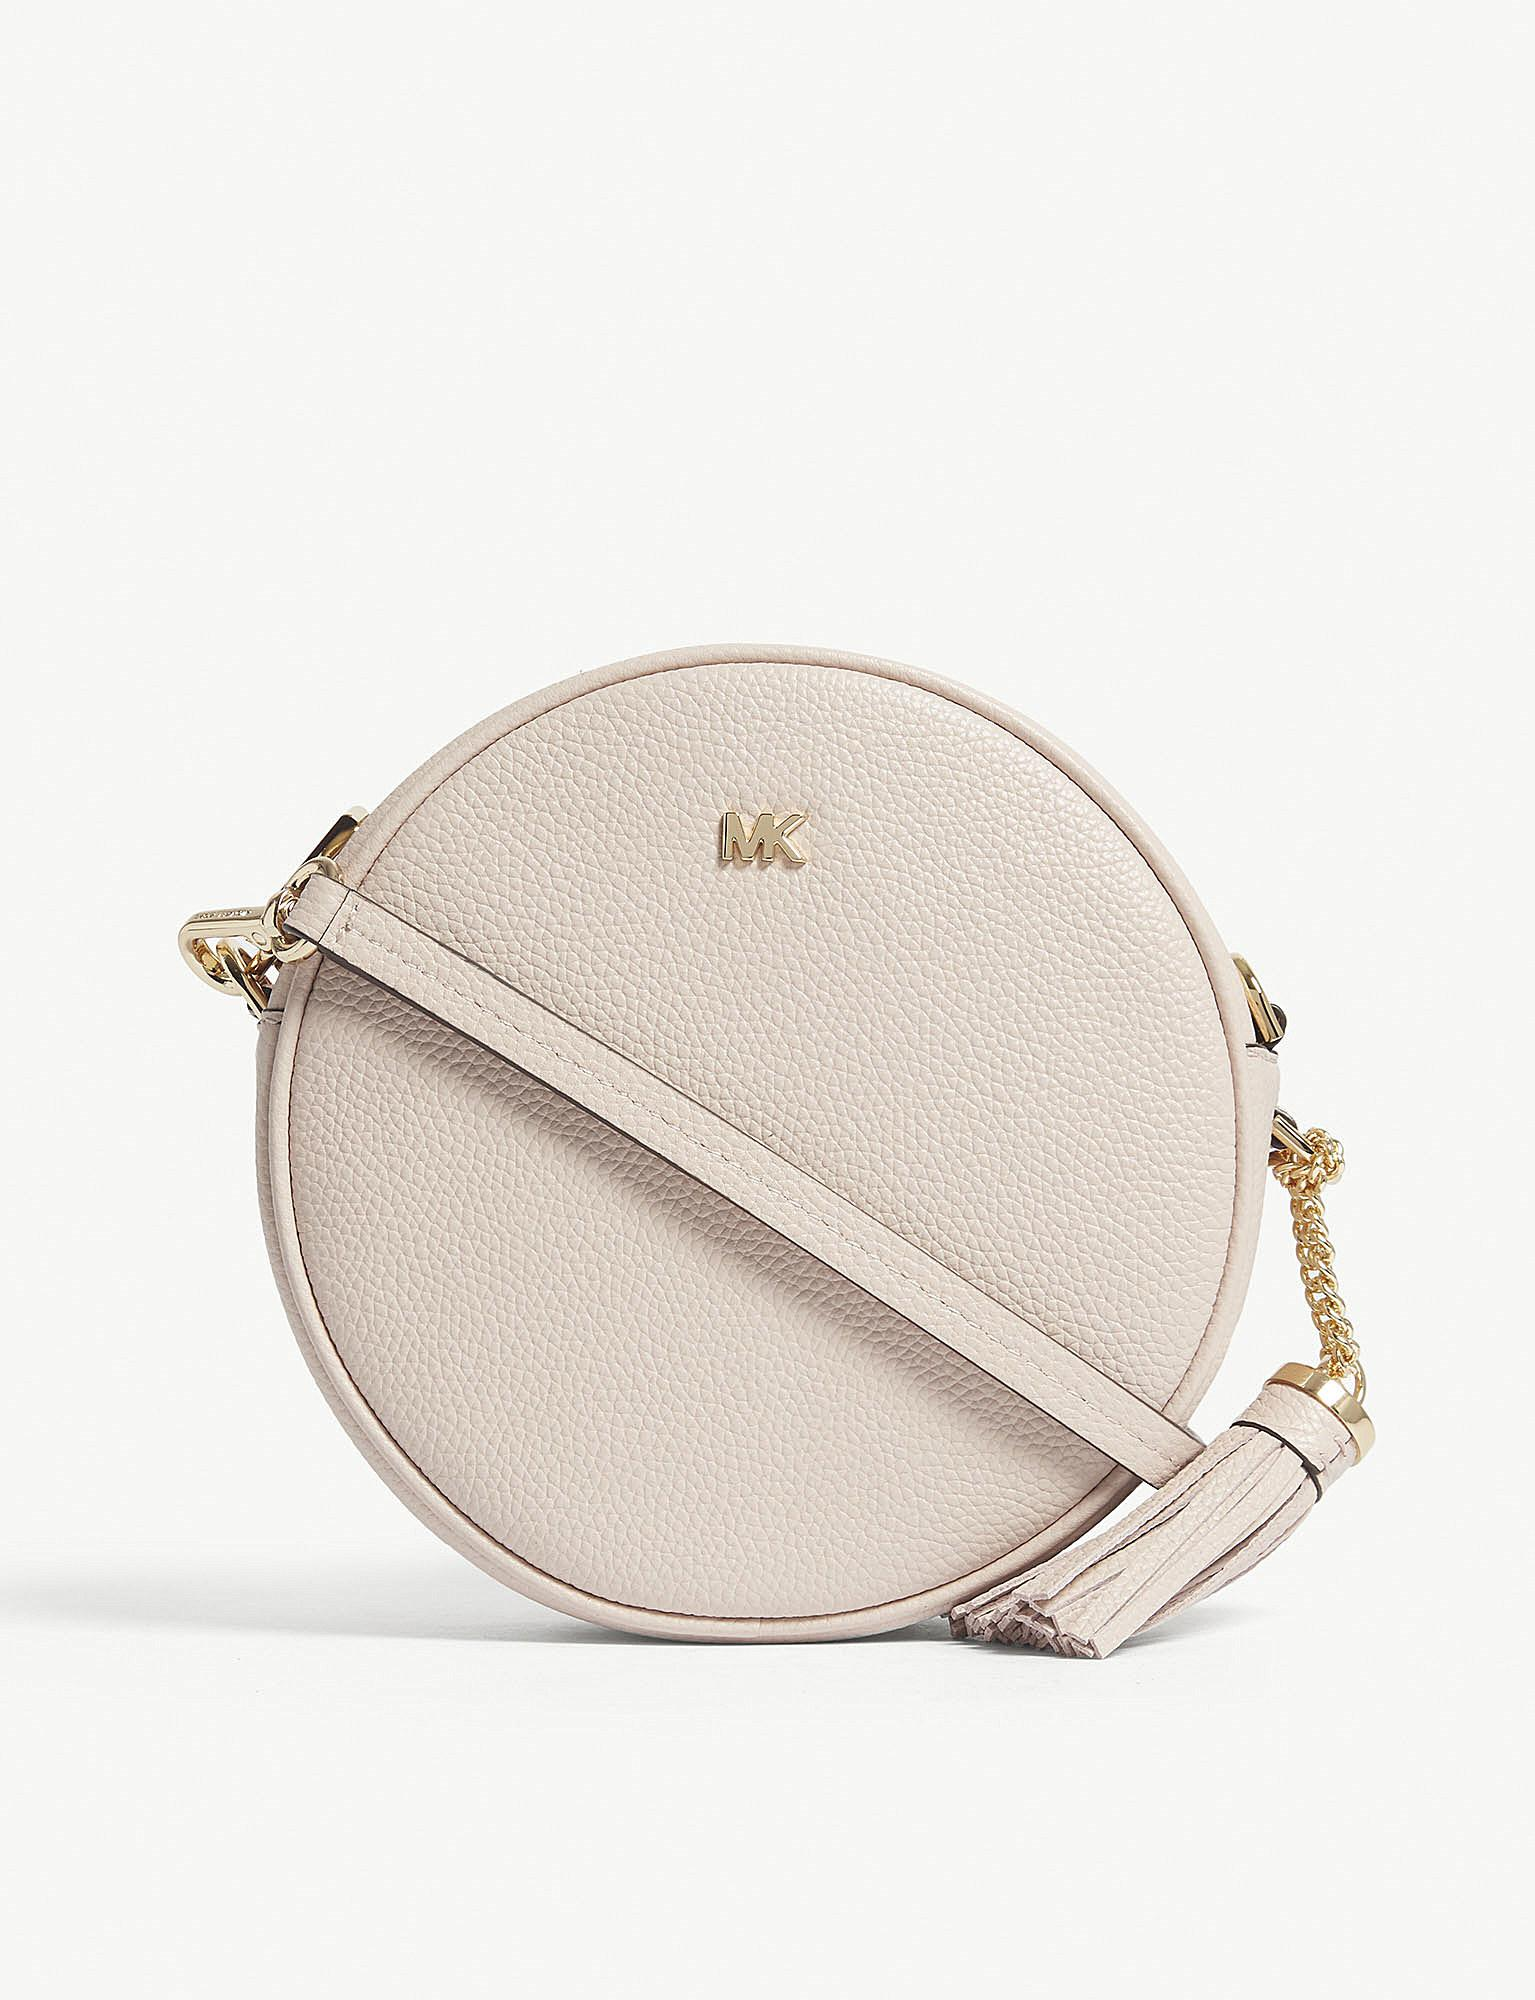 683dc2315654 Gallery. Previously sold at: Selfridges · Women's Bag Charms Women's Cross  Body Bags Women's Michael Kors Charm